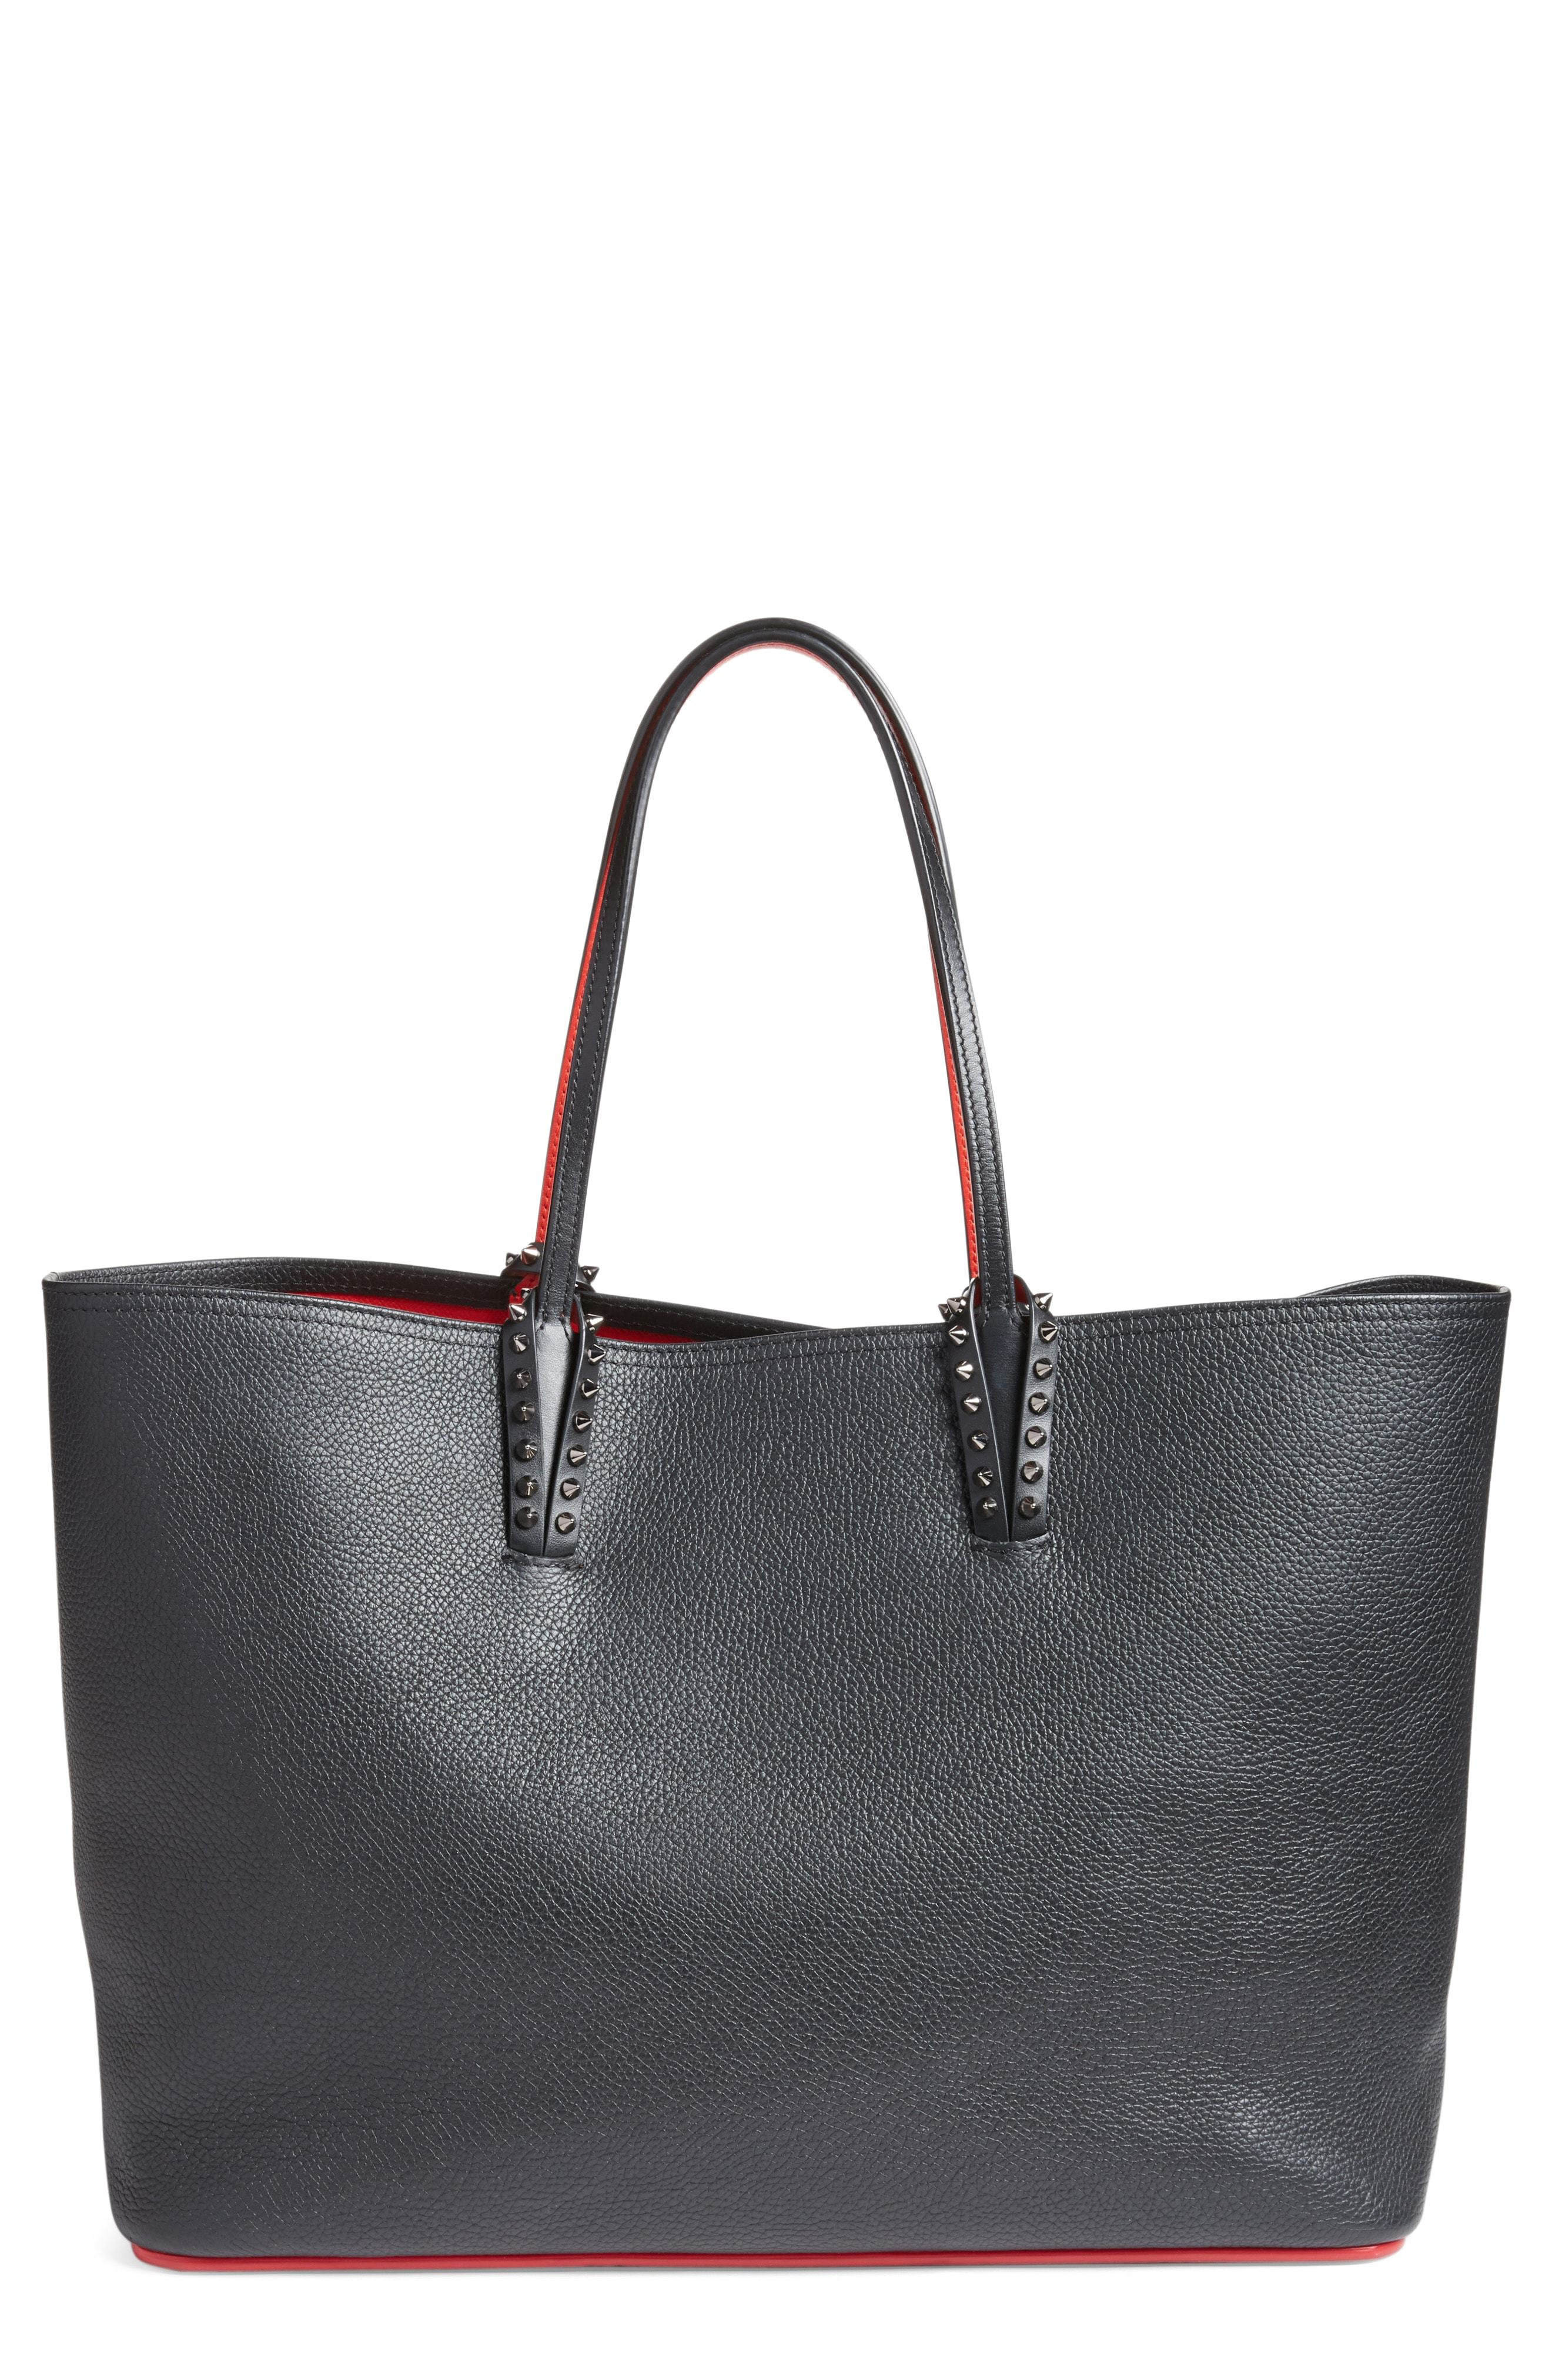 f85d7bd1c26a ... Christian Louboutin Cabata Calfskin Leather Tote